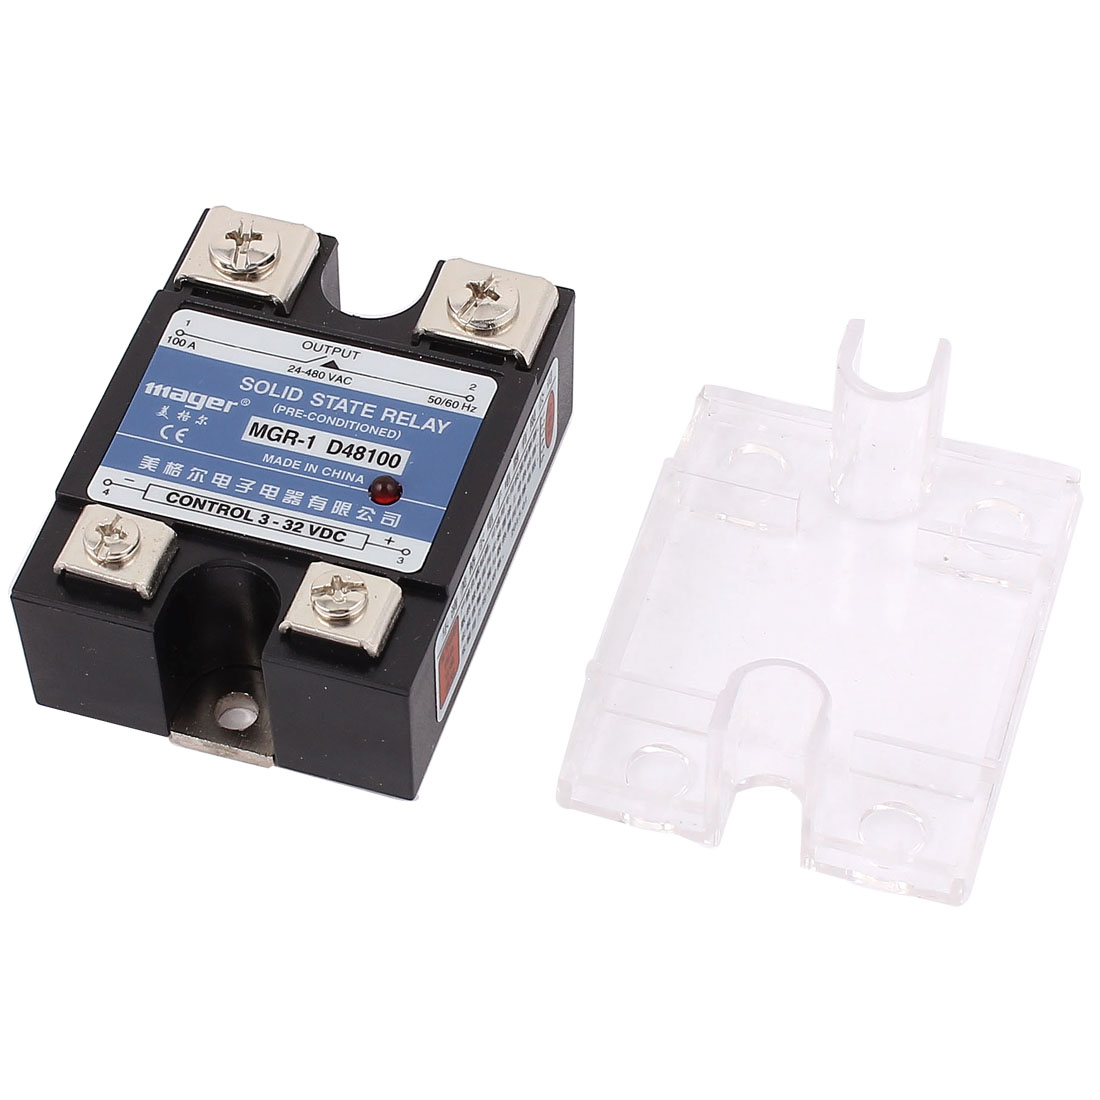 D48100 AC 24-480V 100A Output DC 3-32V Input Rectangle Base Single Phase Solid State Relay